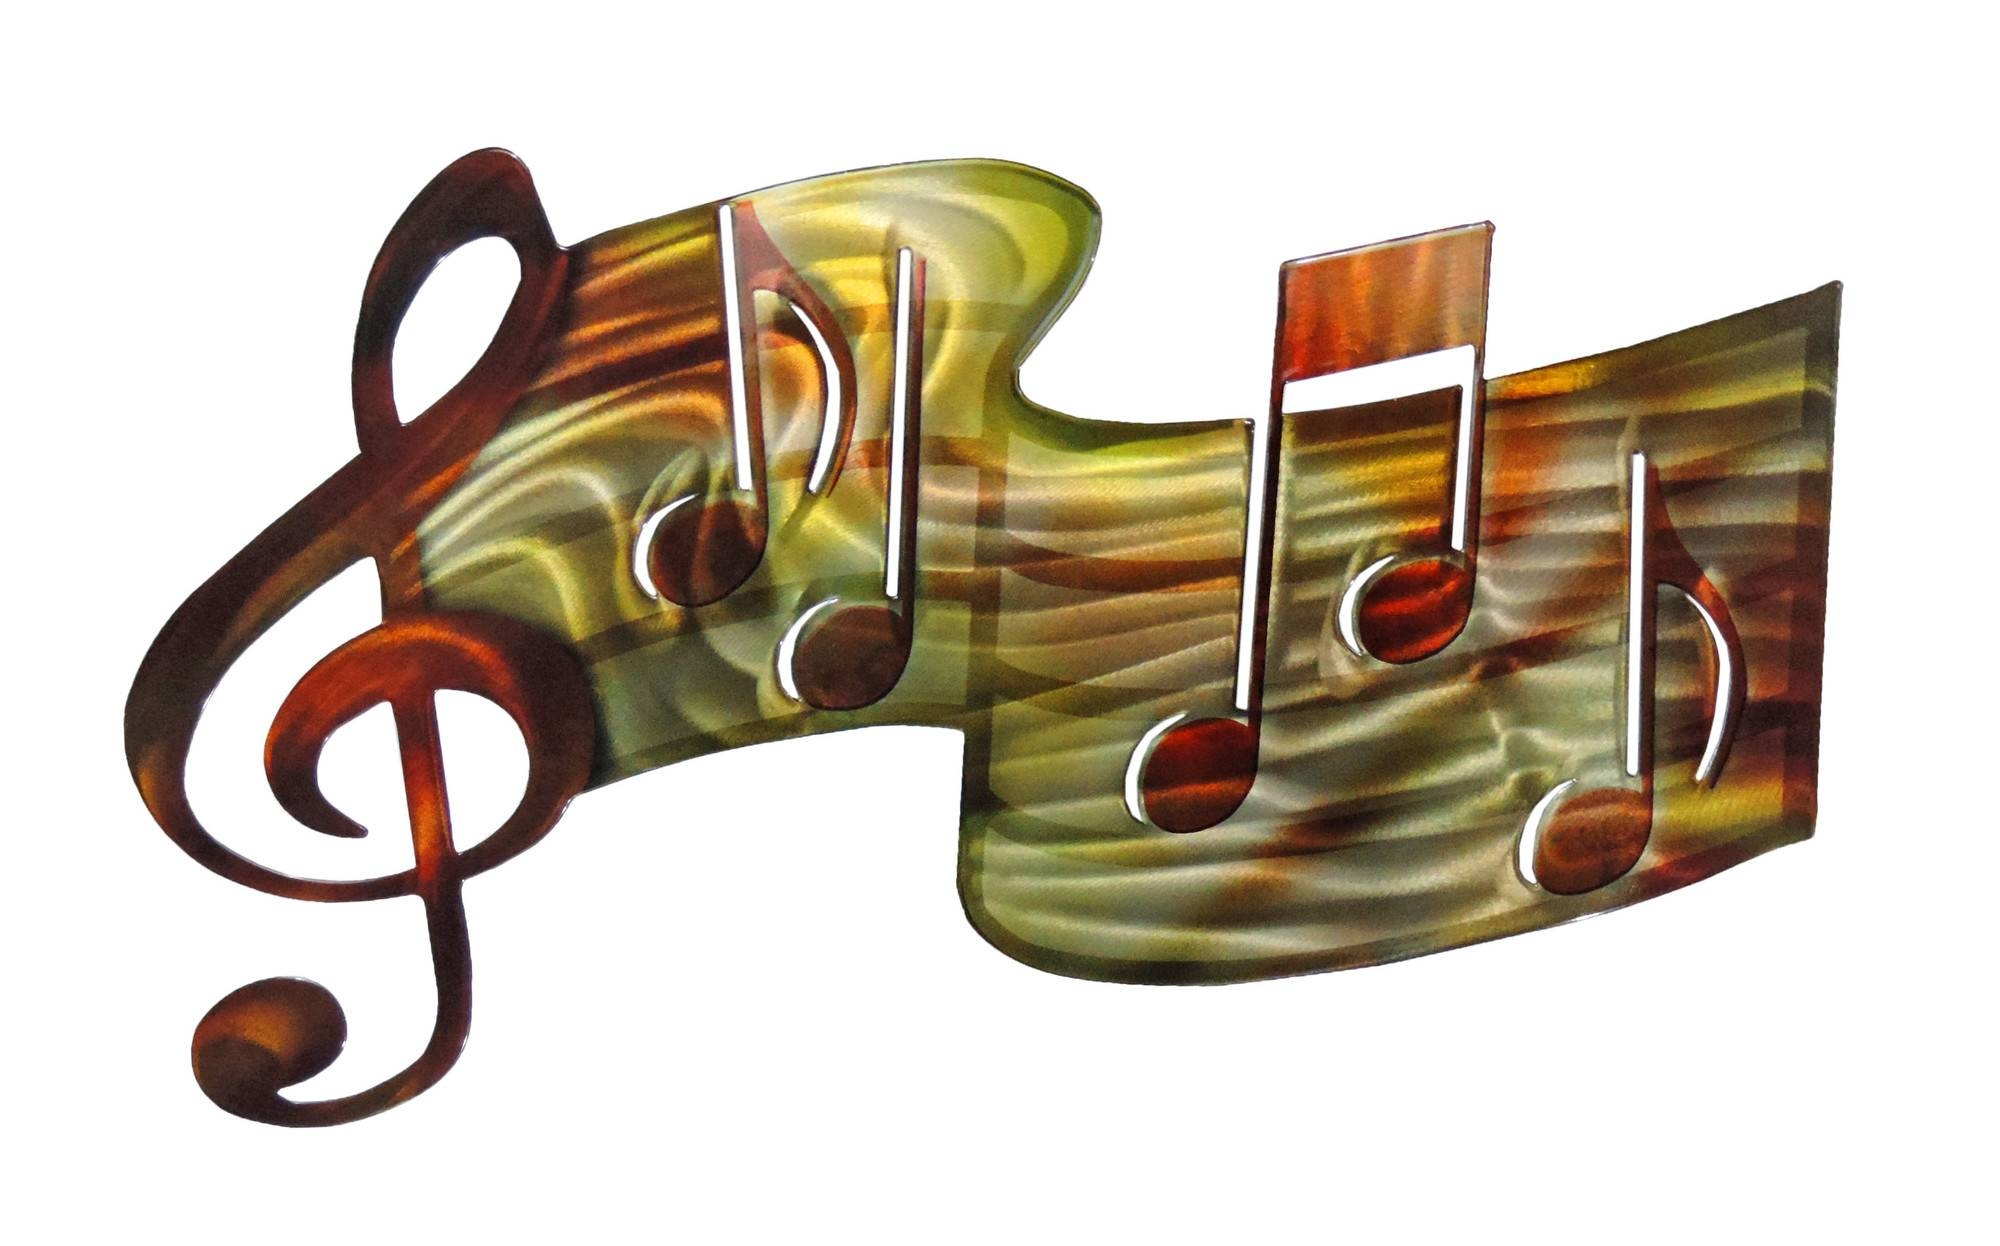 3D Music Staff – Musical Metal Wall Art Intended For Most Recent Musical Metal Wall Art (View 1 of 20)